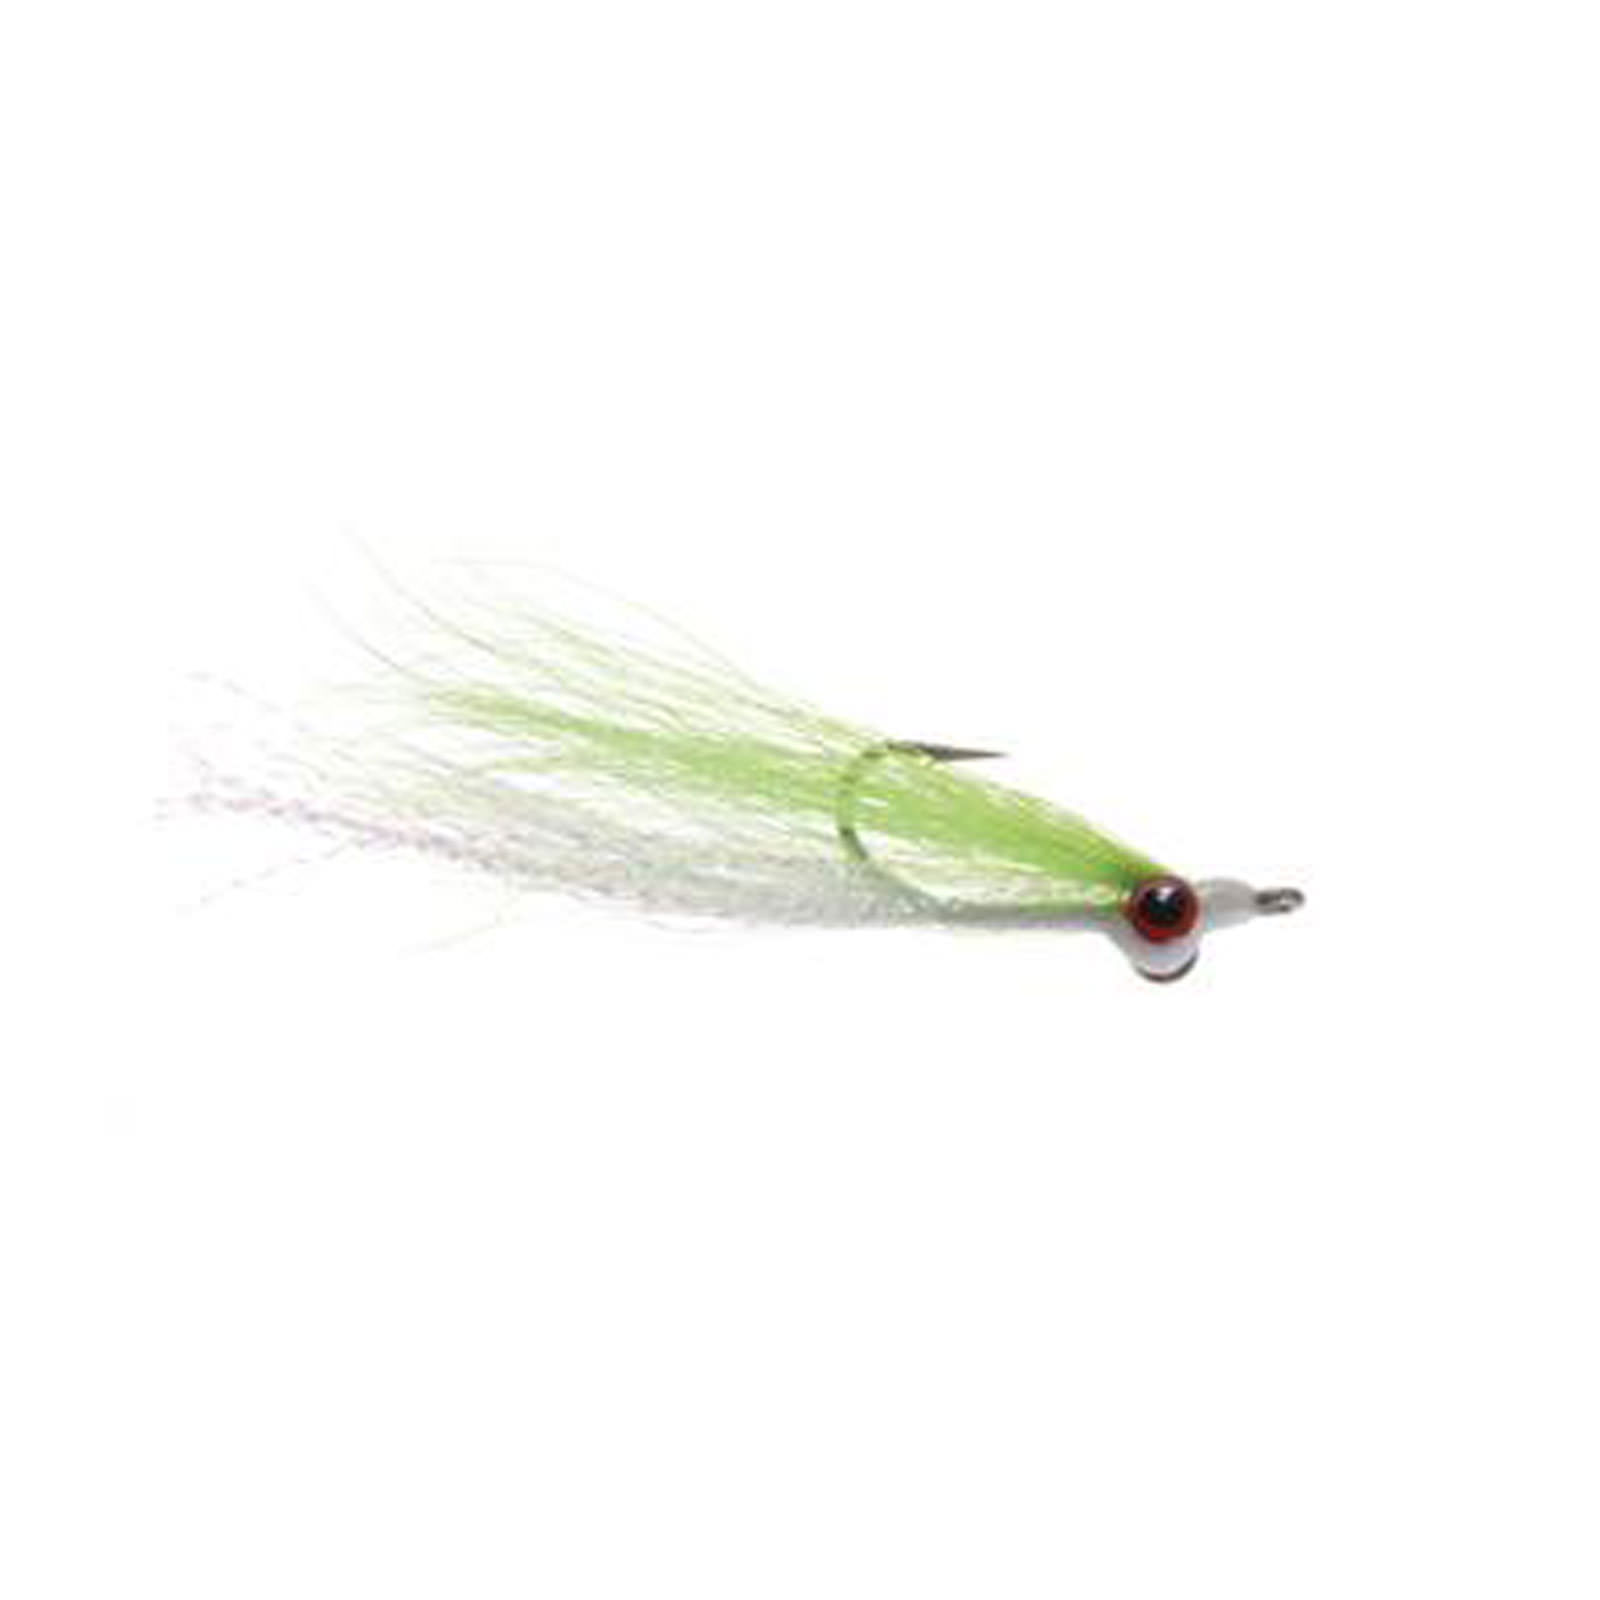 Umpqua Surf Candy Fly Fishing Pattern